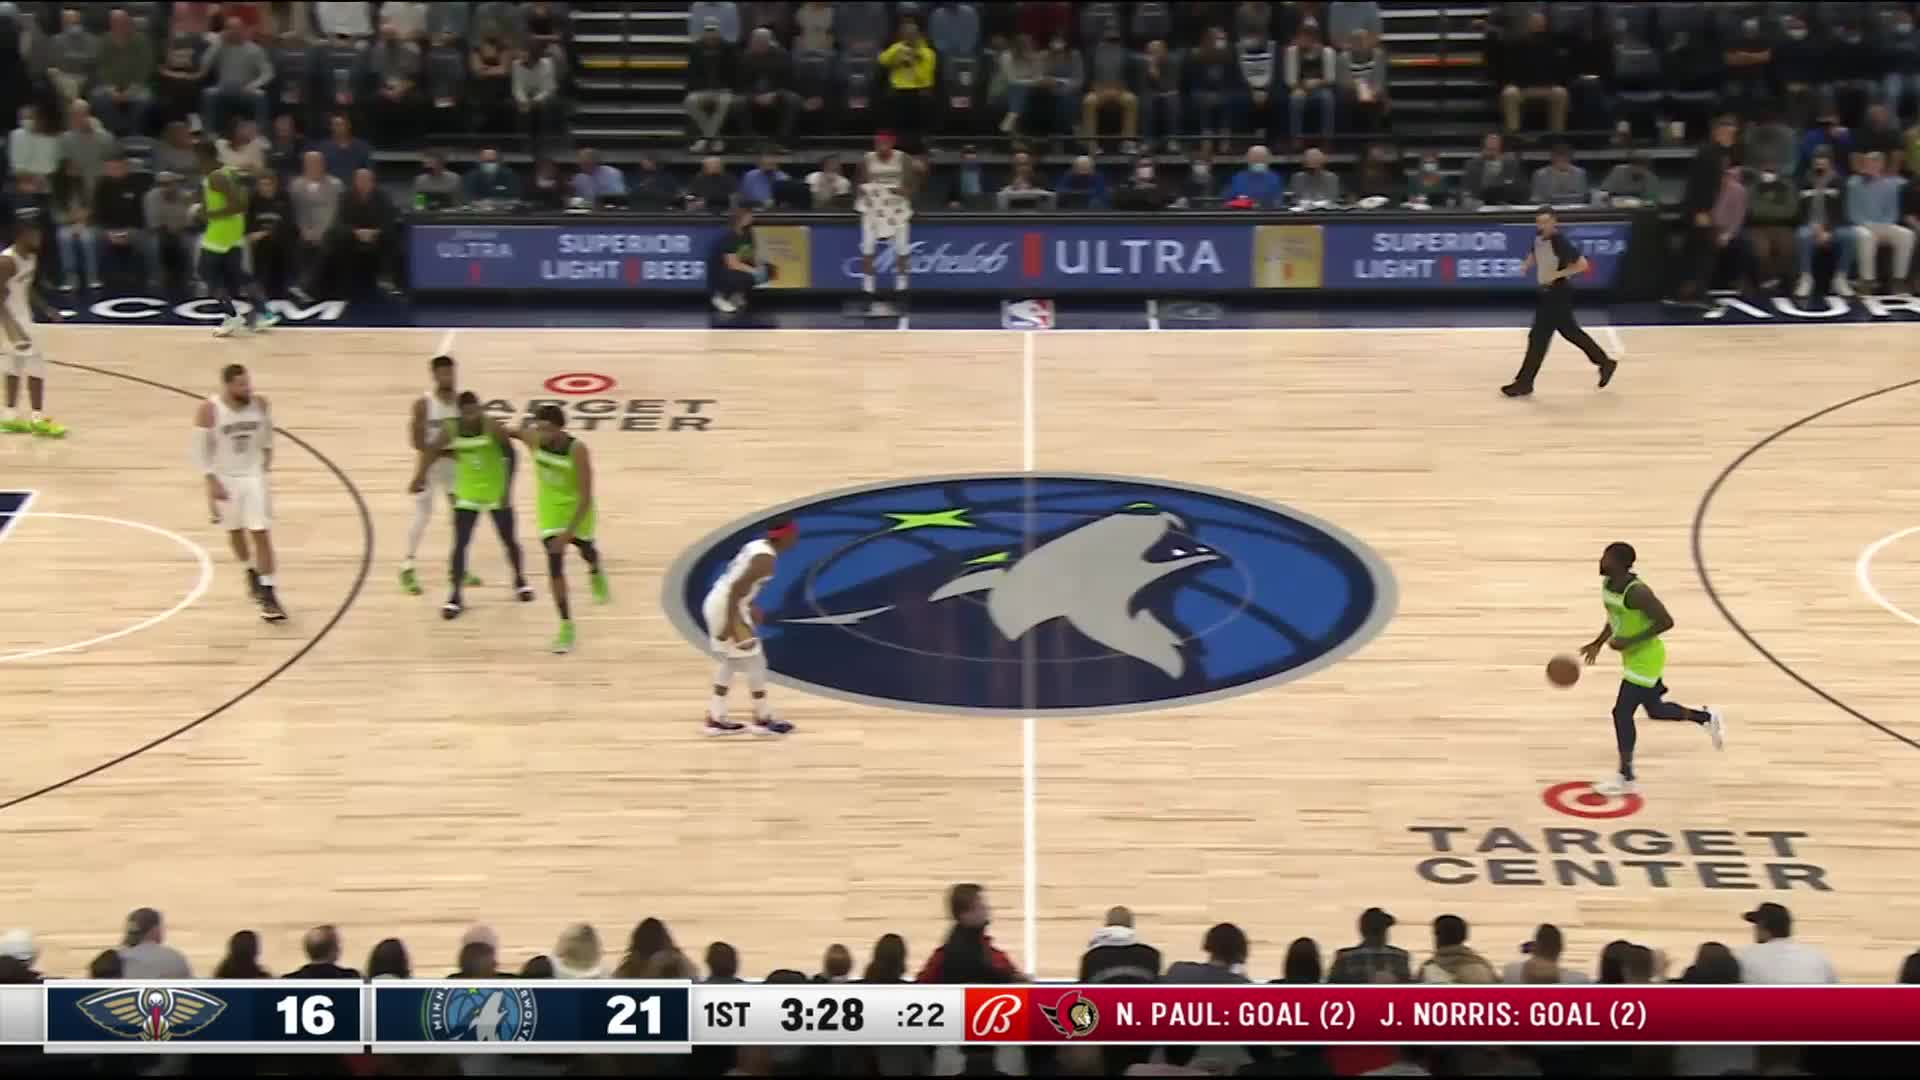 Dunk by Karl-Anthony Towns